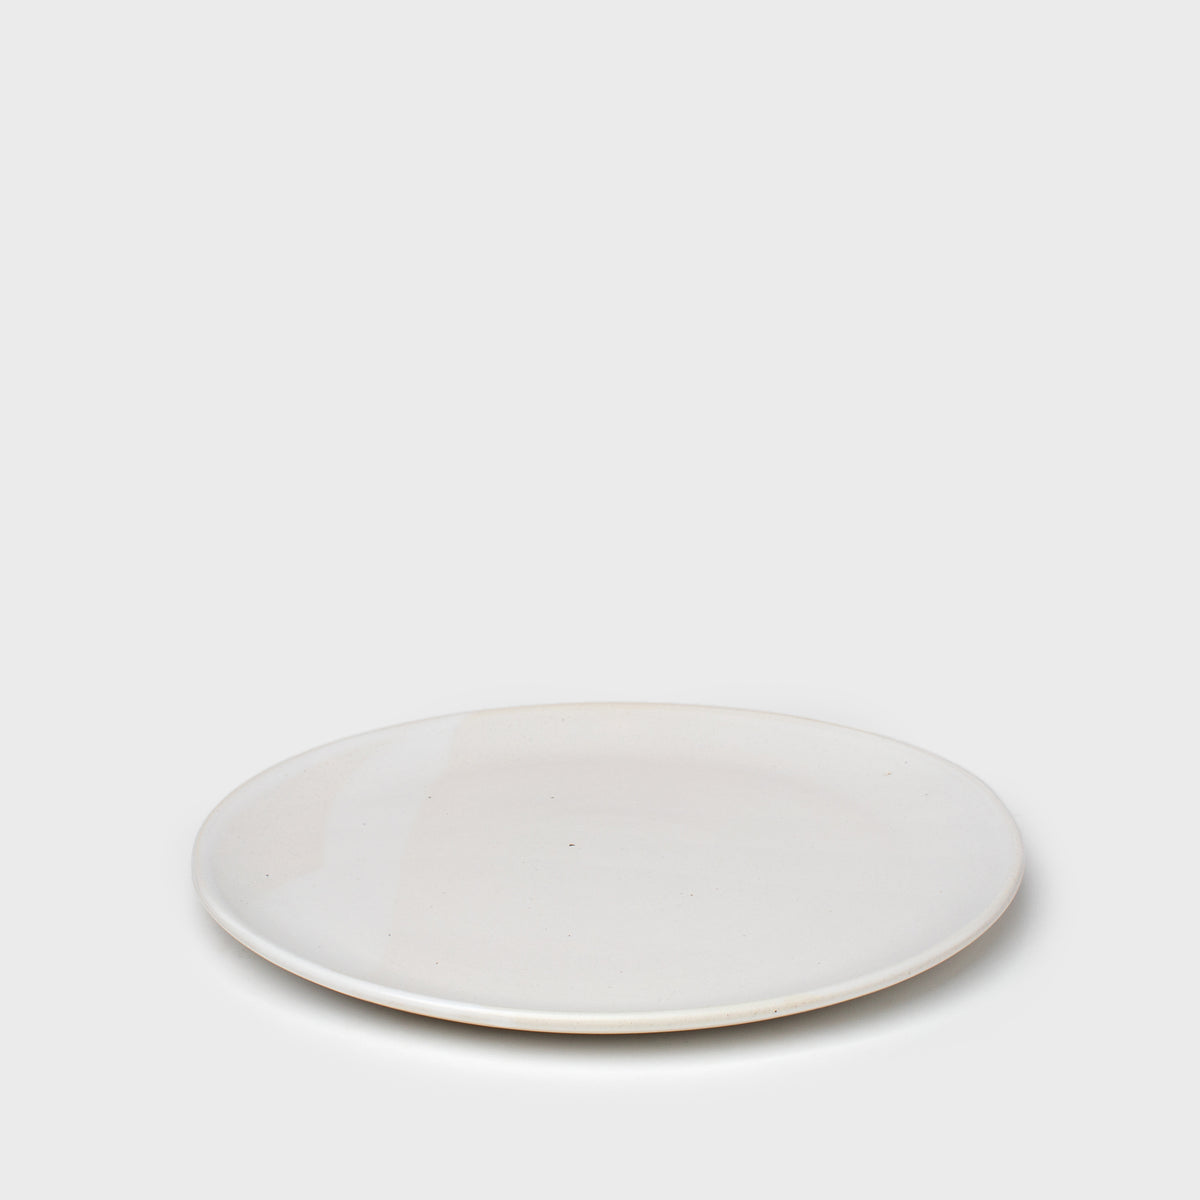 Load image into Gallery viewer, Dinner Plate in White - Kitchen & Dining – Shoppe Amber Interiors